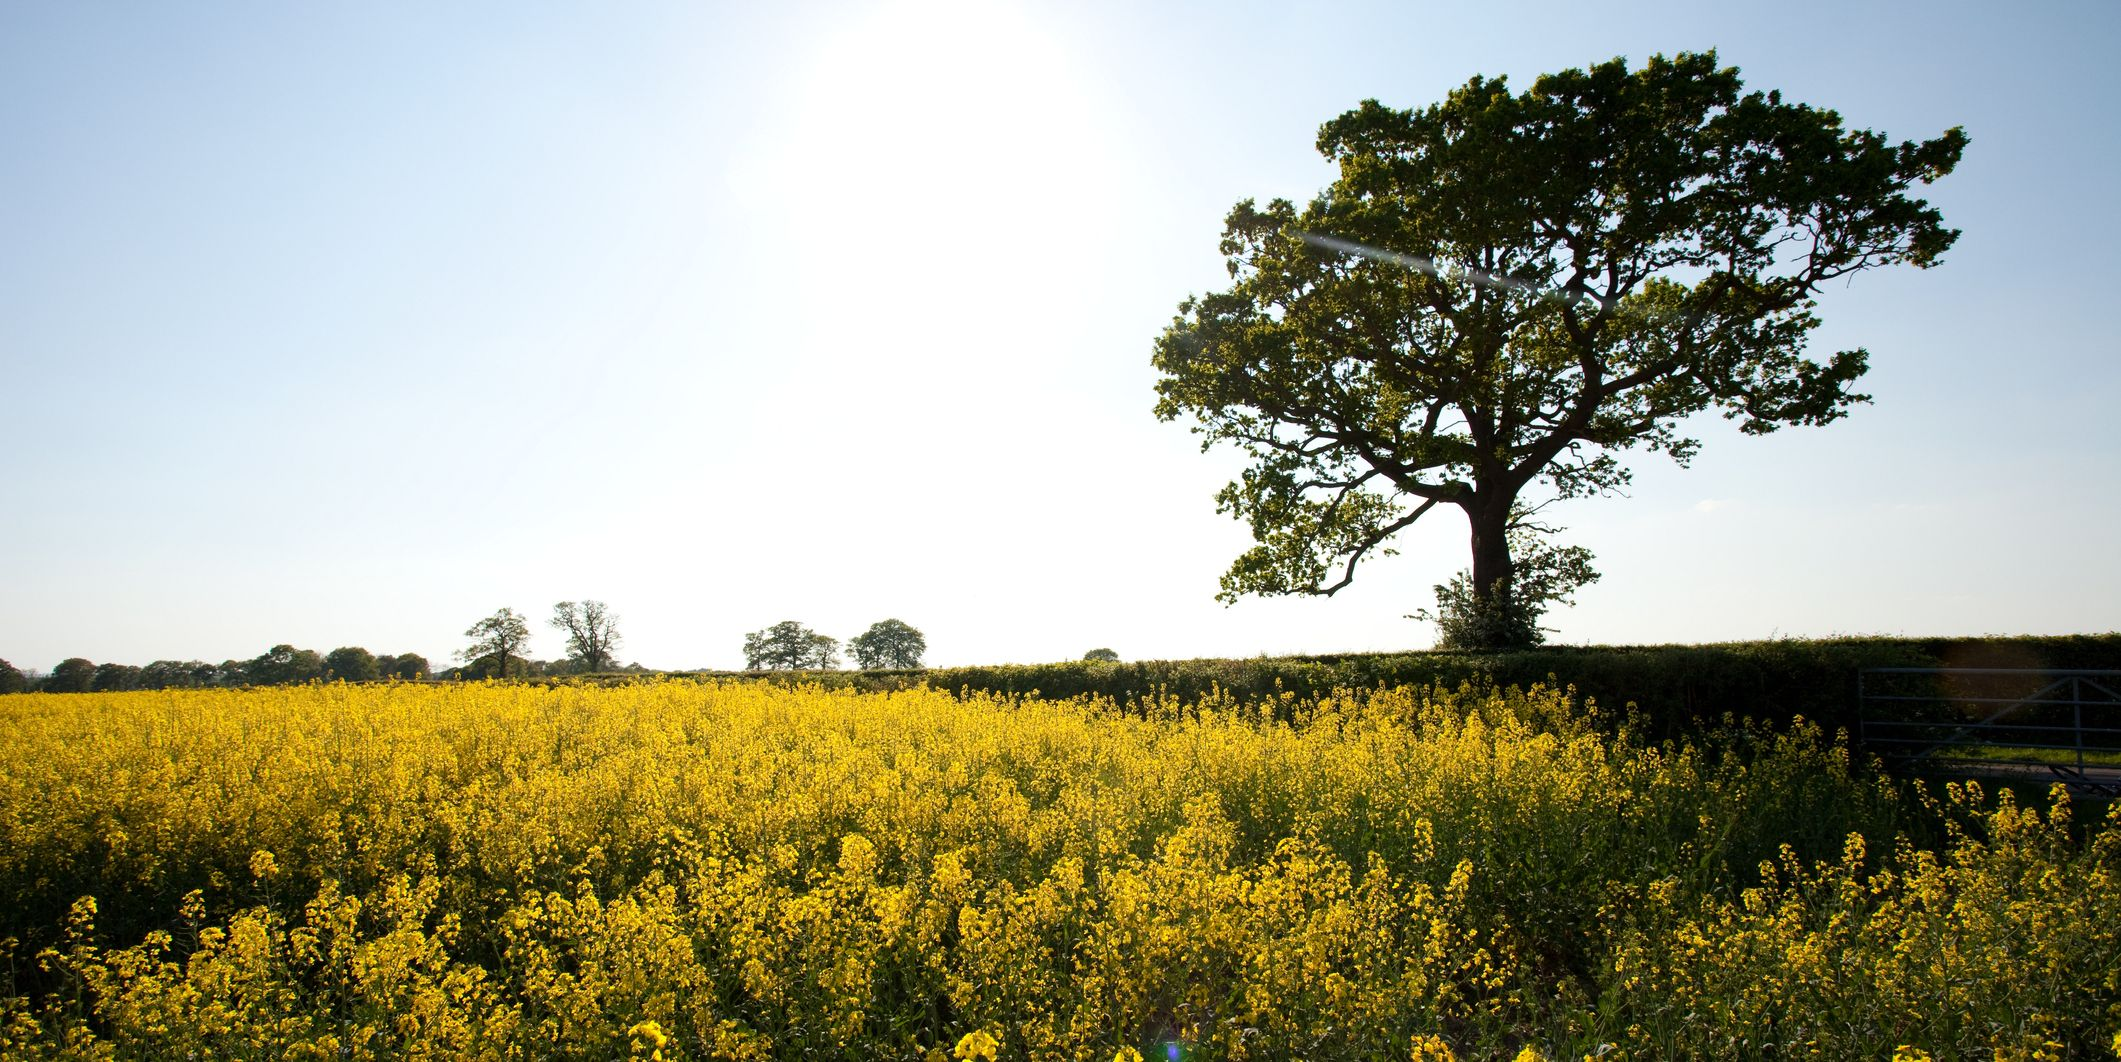 Kent countryside - field of yellow flowers and tree